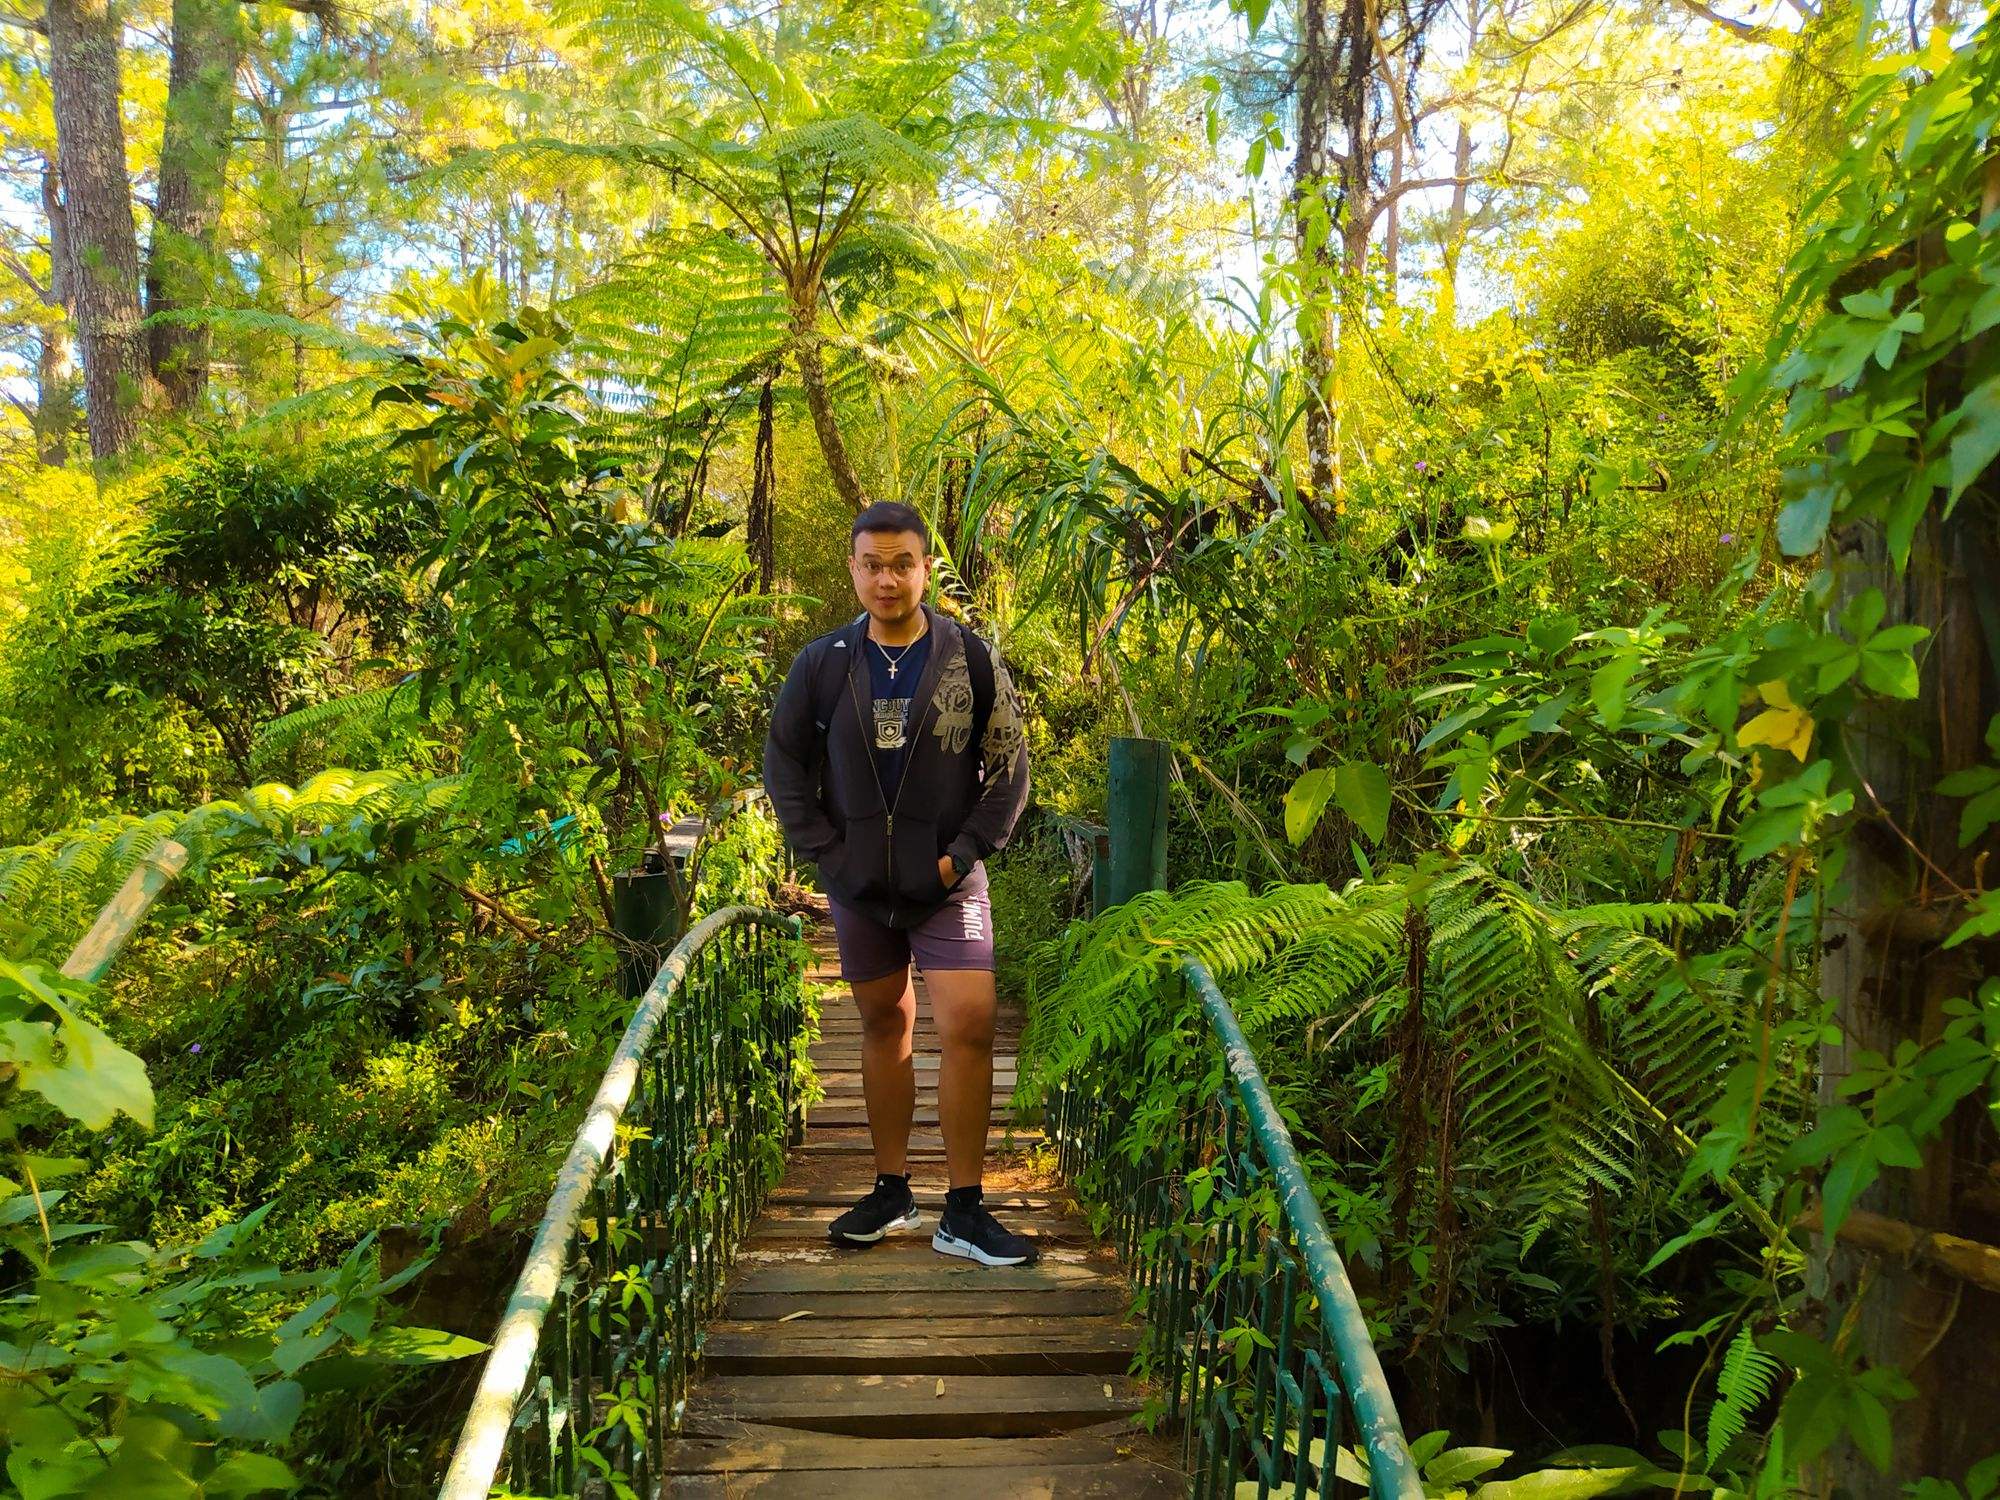 Man standing on a bridge surrounded by thick vegetation